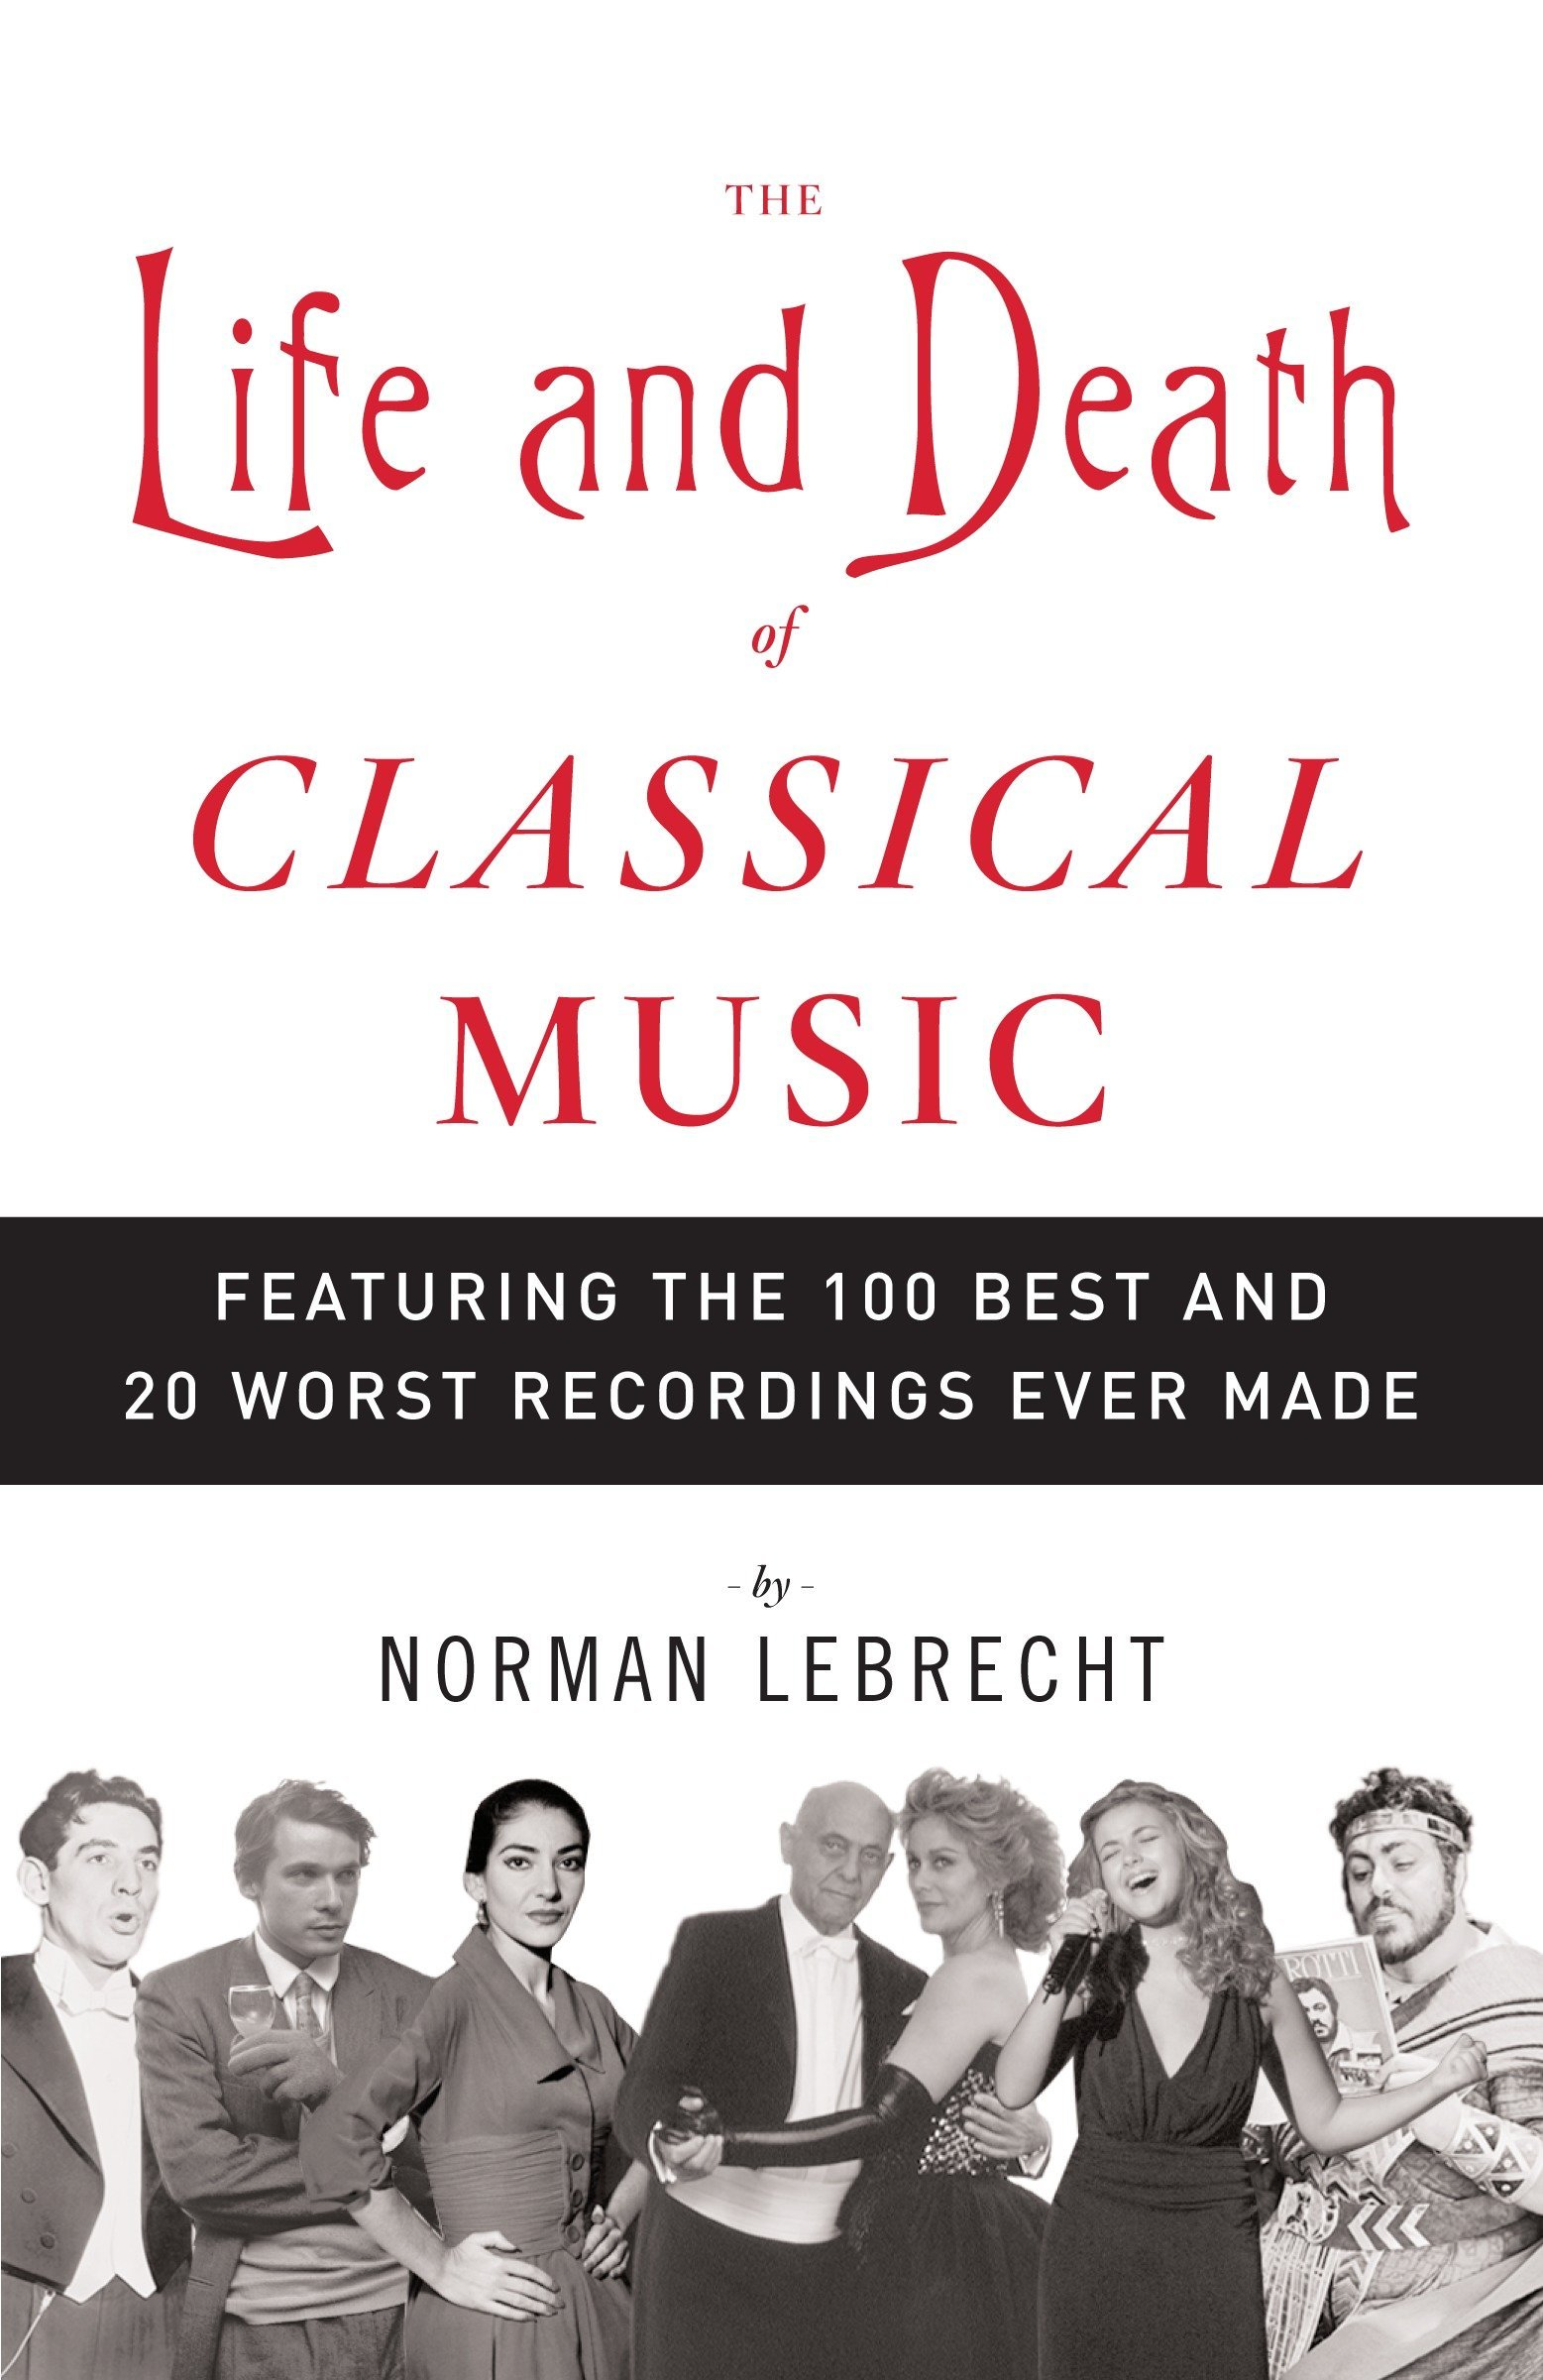 Image result for The life and death of classical music norman lebrecht